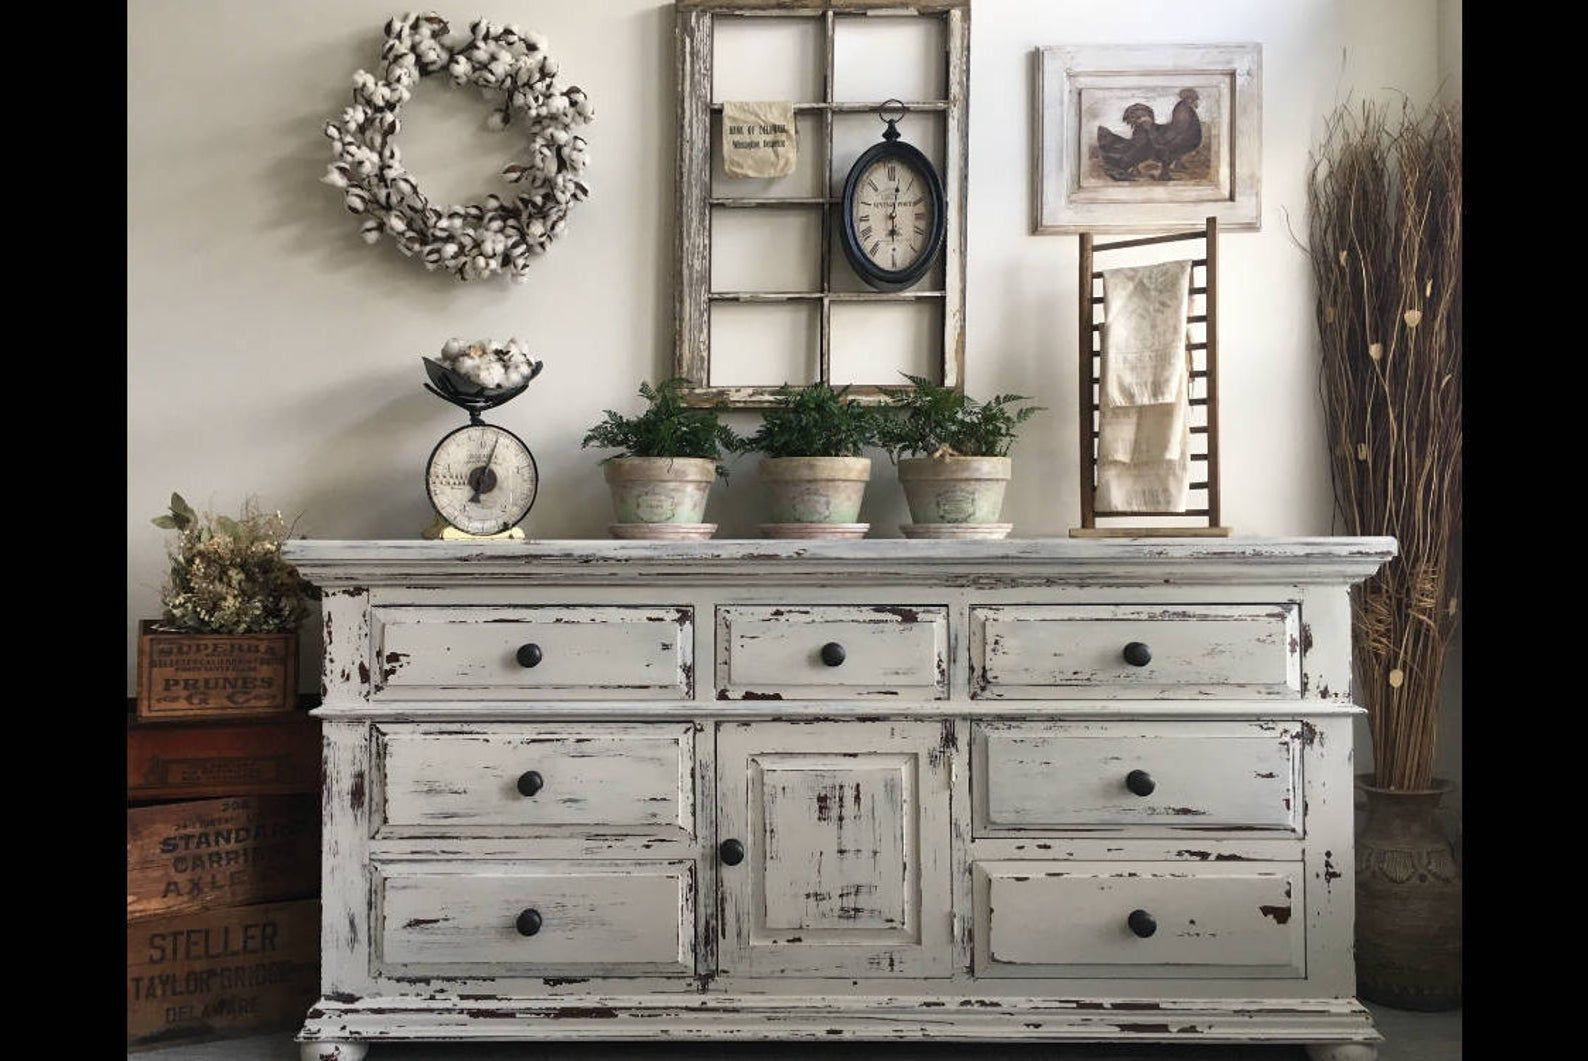 Sold Large Farmhouse 9 Drawer Dresser Or Buffet Made By Broyhill Chippy White Distressed Furniture In 2020 White Distressed Furniture Shabby Chic Kitchen Cabinets Shabby Chic Furniture